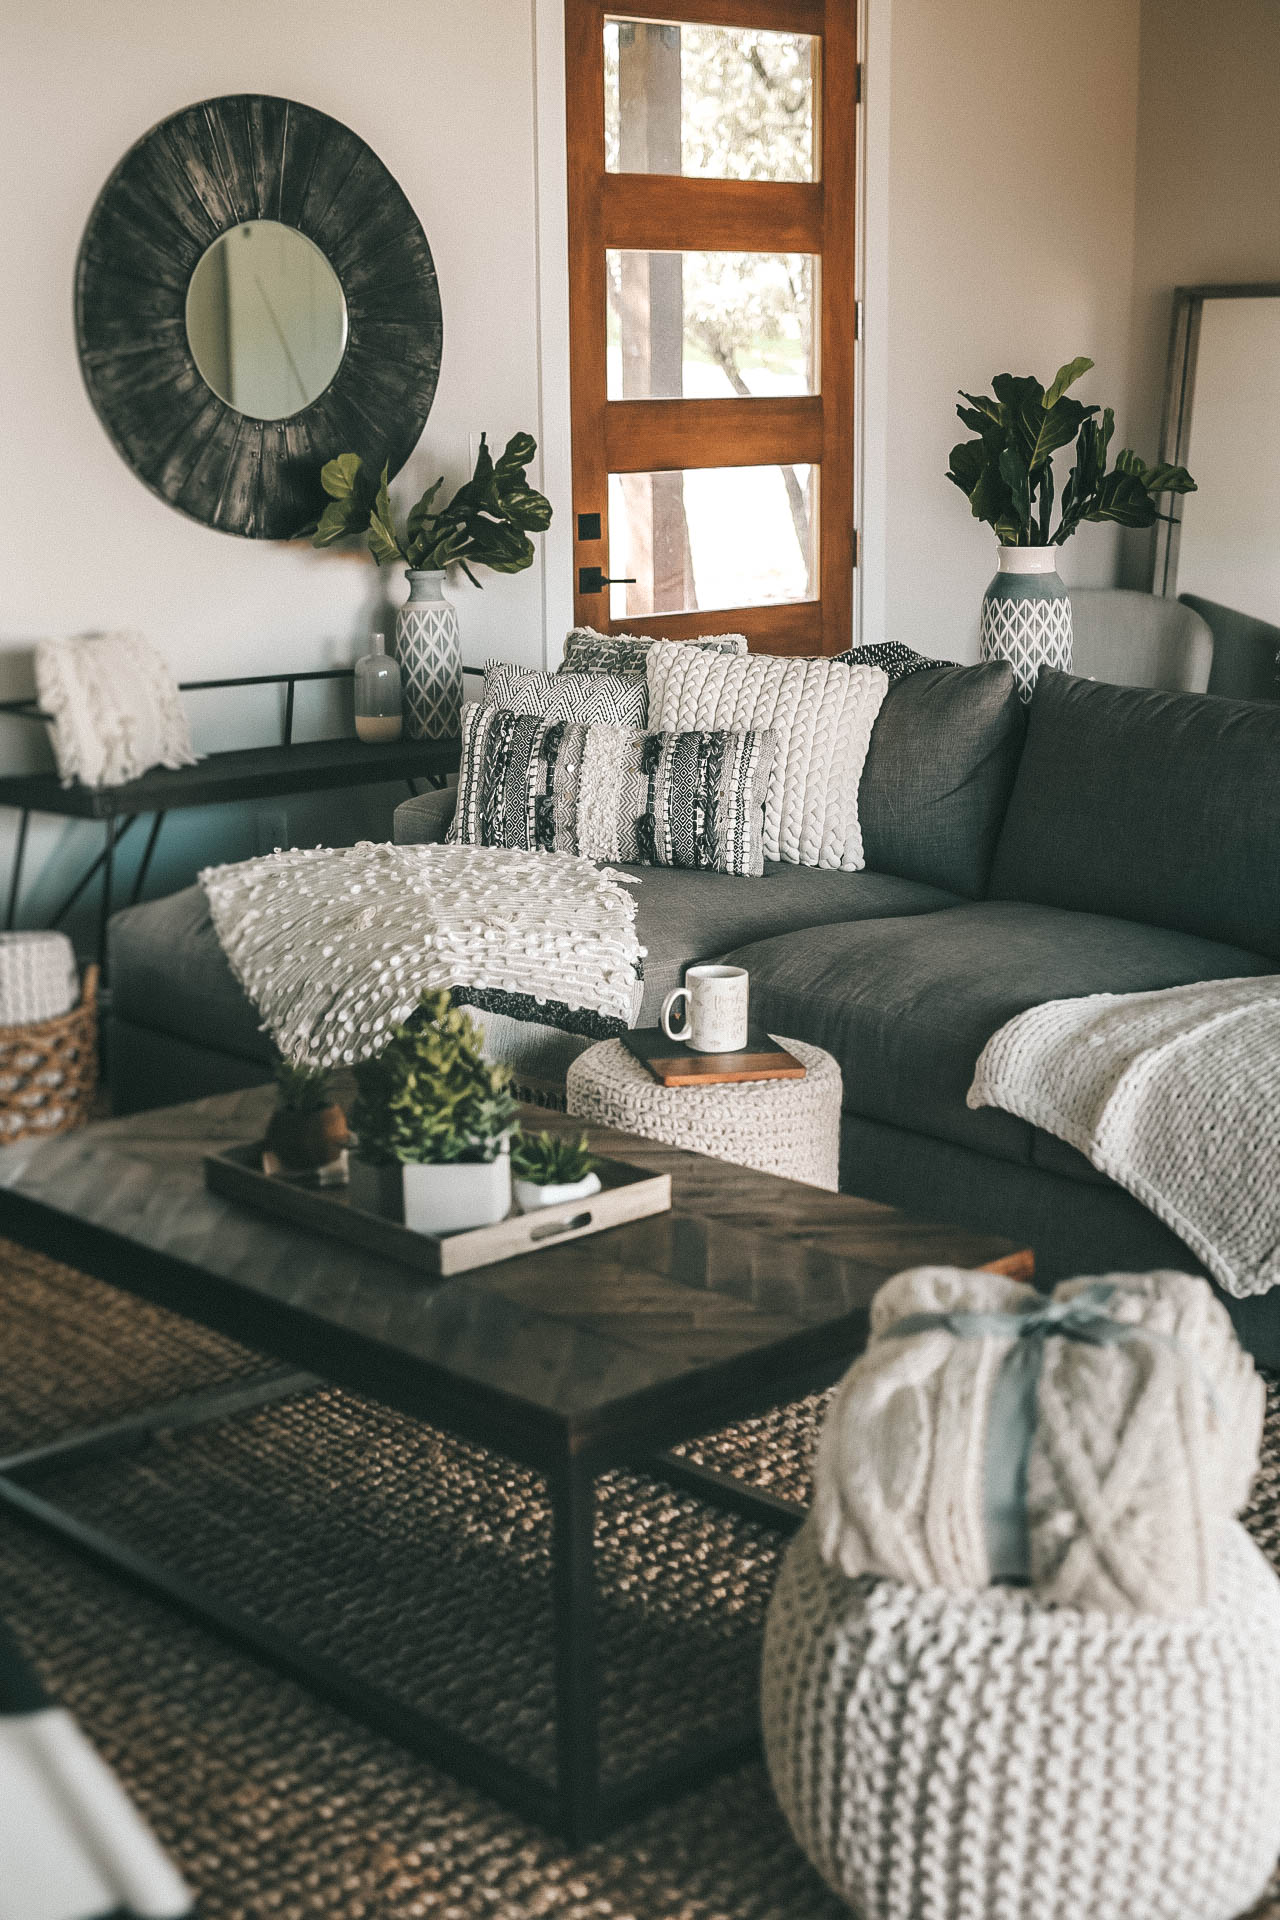 DTKAustin shares a sneak peek into her newly built home. She styled the modern farmhouse with Nordstrom Home Decor on a budget. | Make Your Home Cozier for Fall | fall home decor | decorating for fall | cozy home decor ideas || Dressed to Kill #fall #home #homedecor #fallhome #decorating #dtkaustin - Fall Home Decor for a Cozier Home with Nordstrom Decor featured by popular Austin life and style blogger, Dressed to Kill